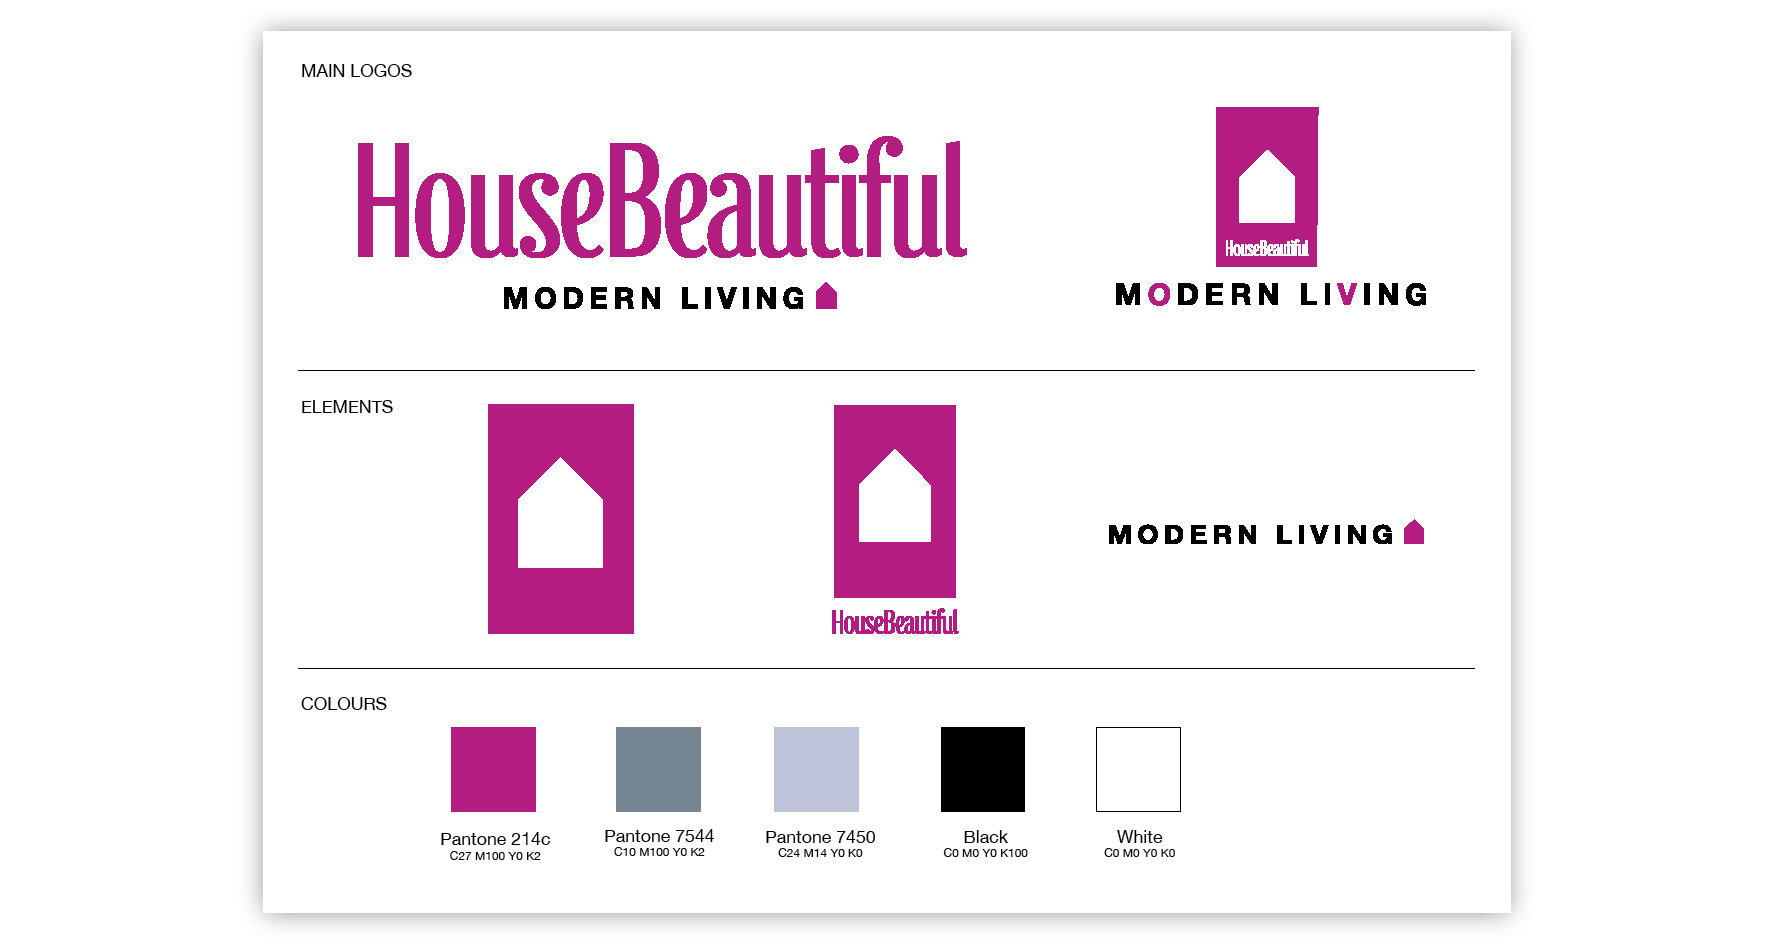 Sub brand logo and guidelines for House Beautiful